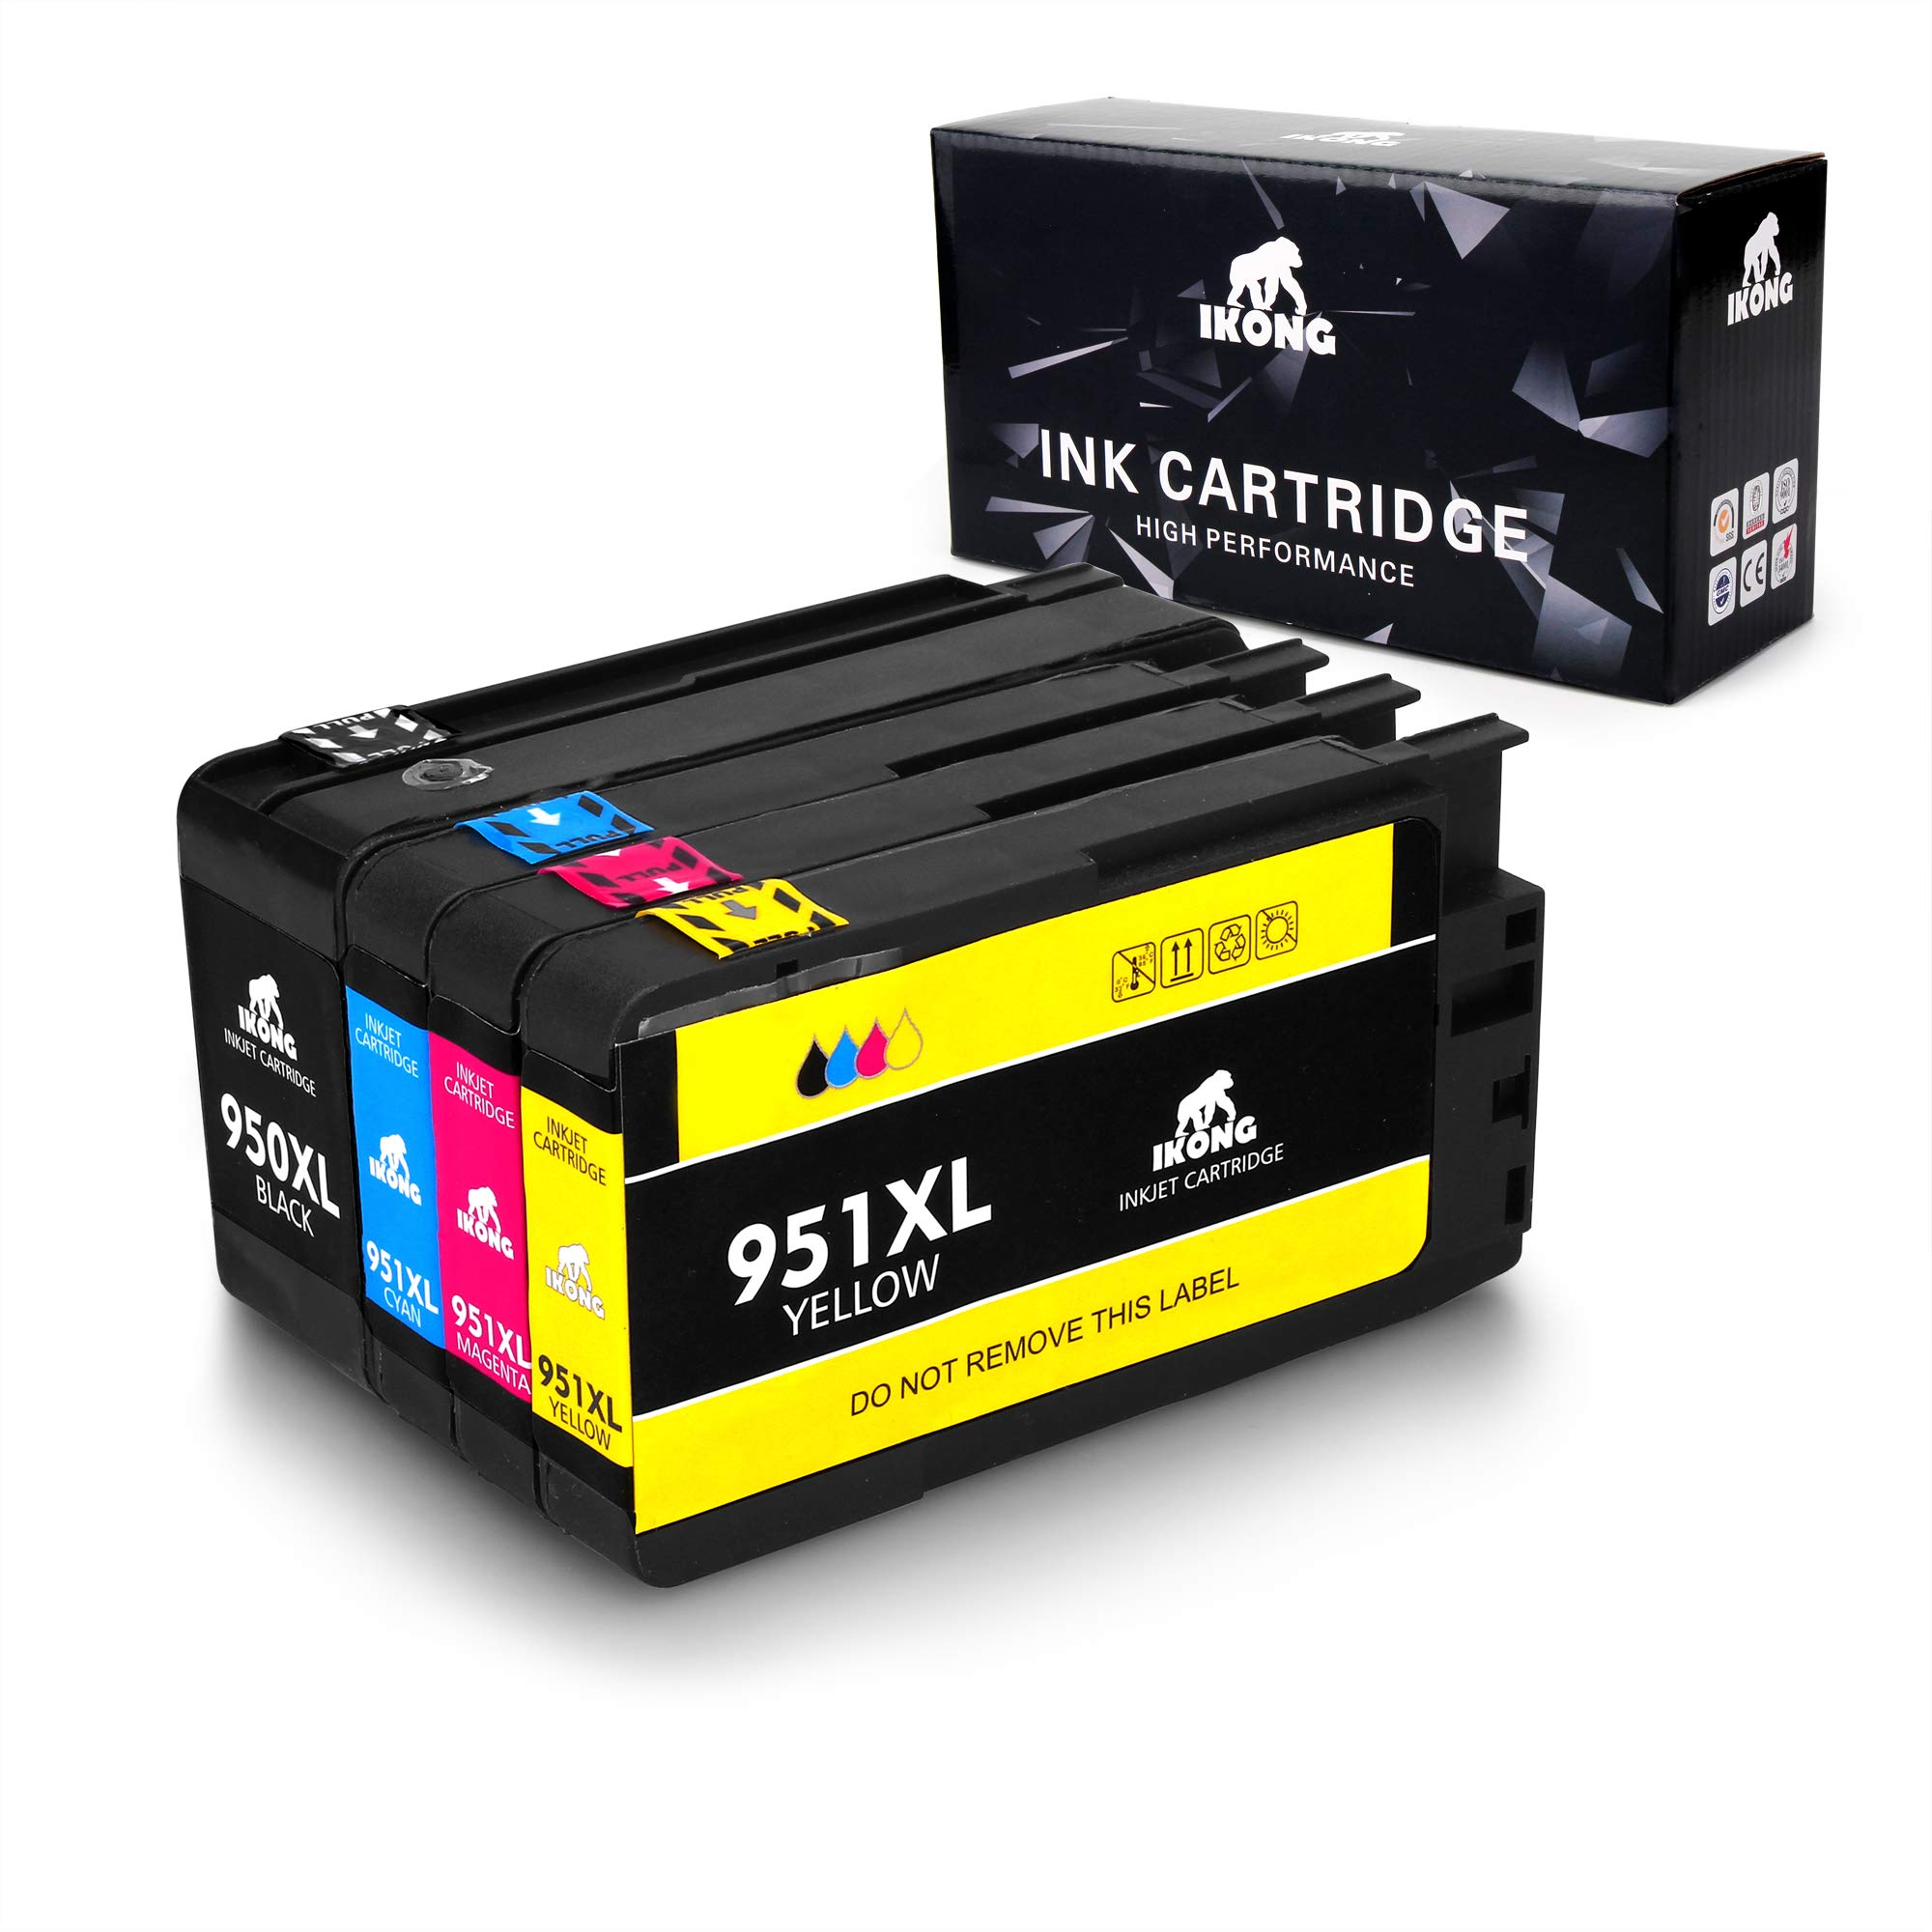 IKONG 950XL 951XL New Updated Compatible for HP 950 951 Ink Cartridge Works with HP OfficeJet Pro 8600 8610 8620 8100 8630 8660 8640 8615 8625 276DW 251DW 271DW